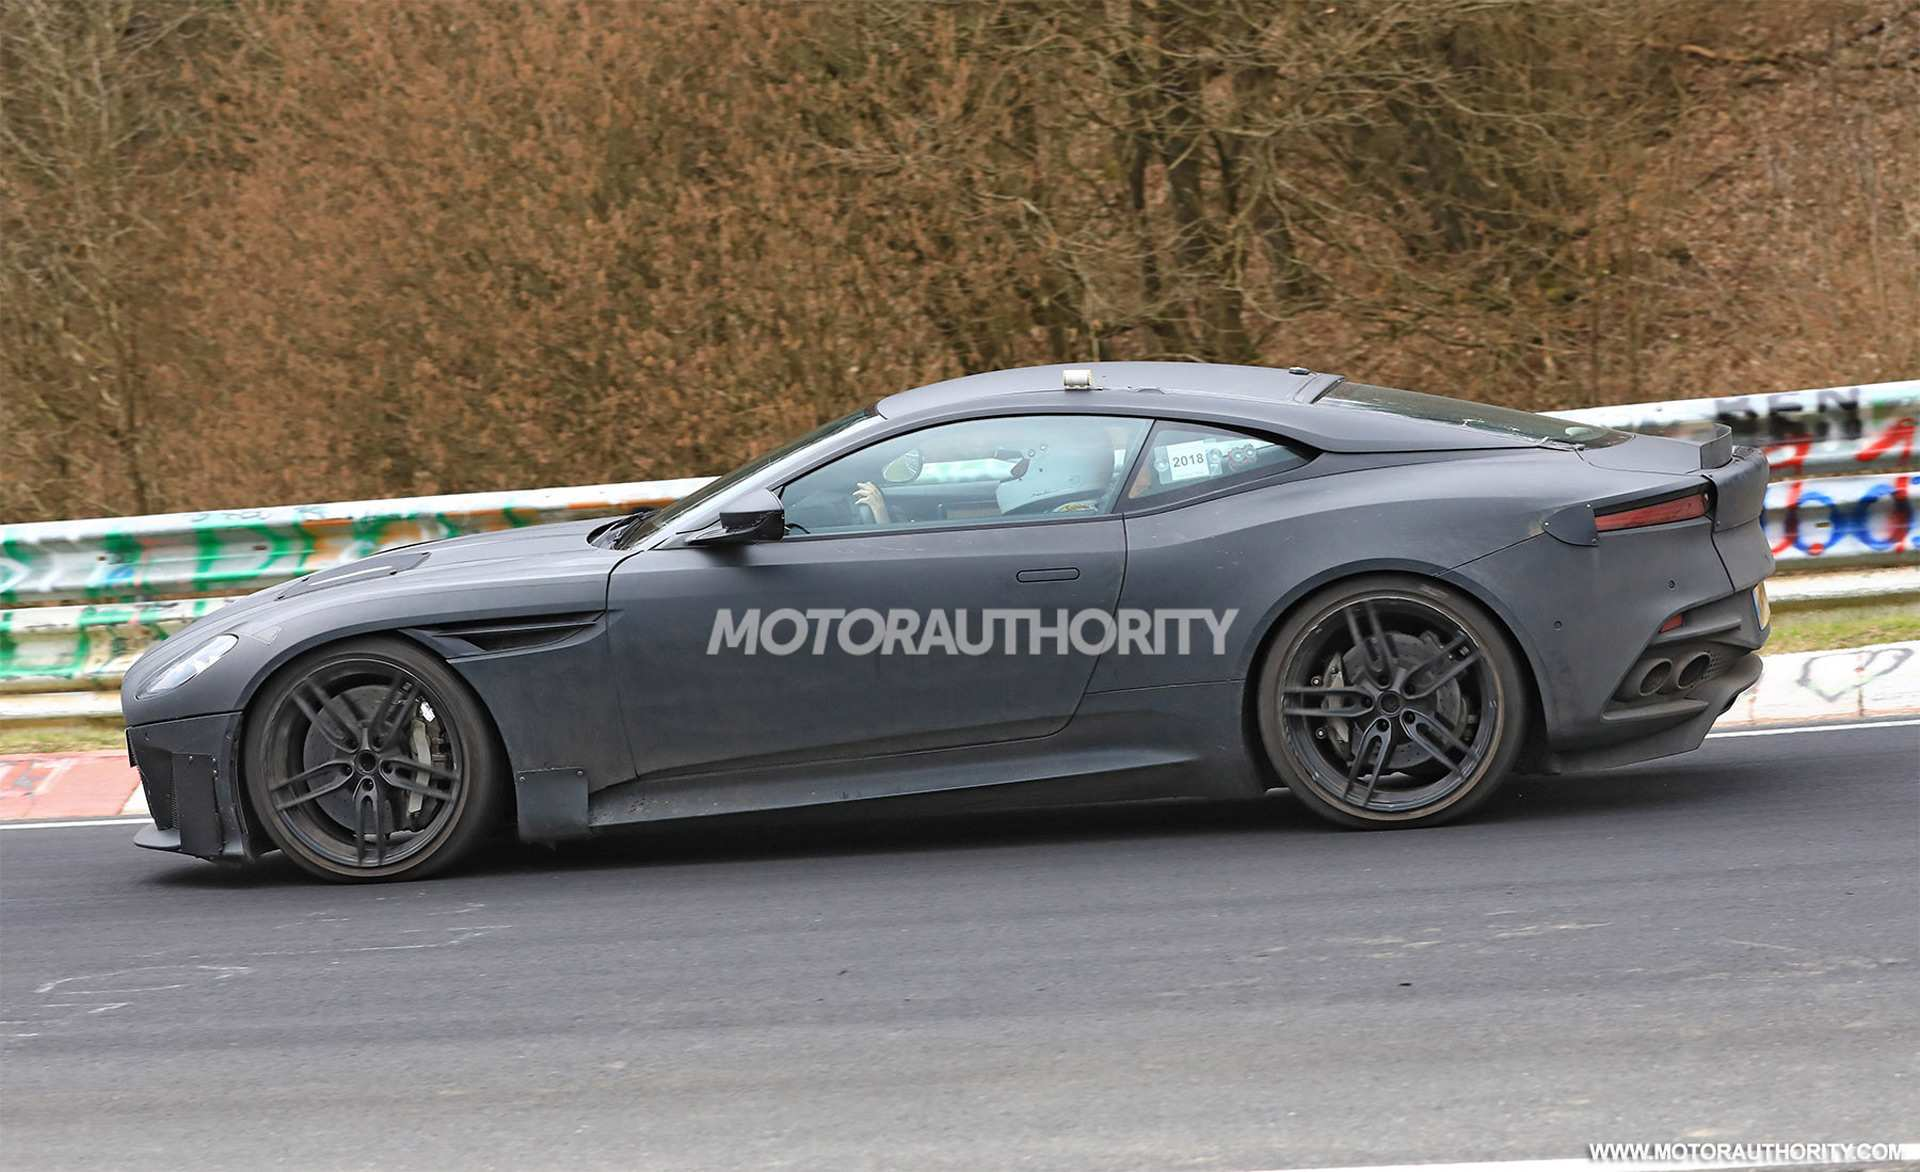 23 New 2020 Aston Martin DB9 Interior